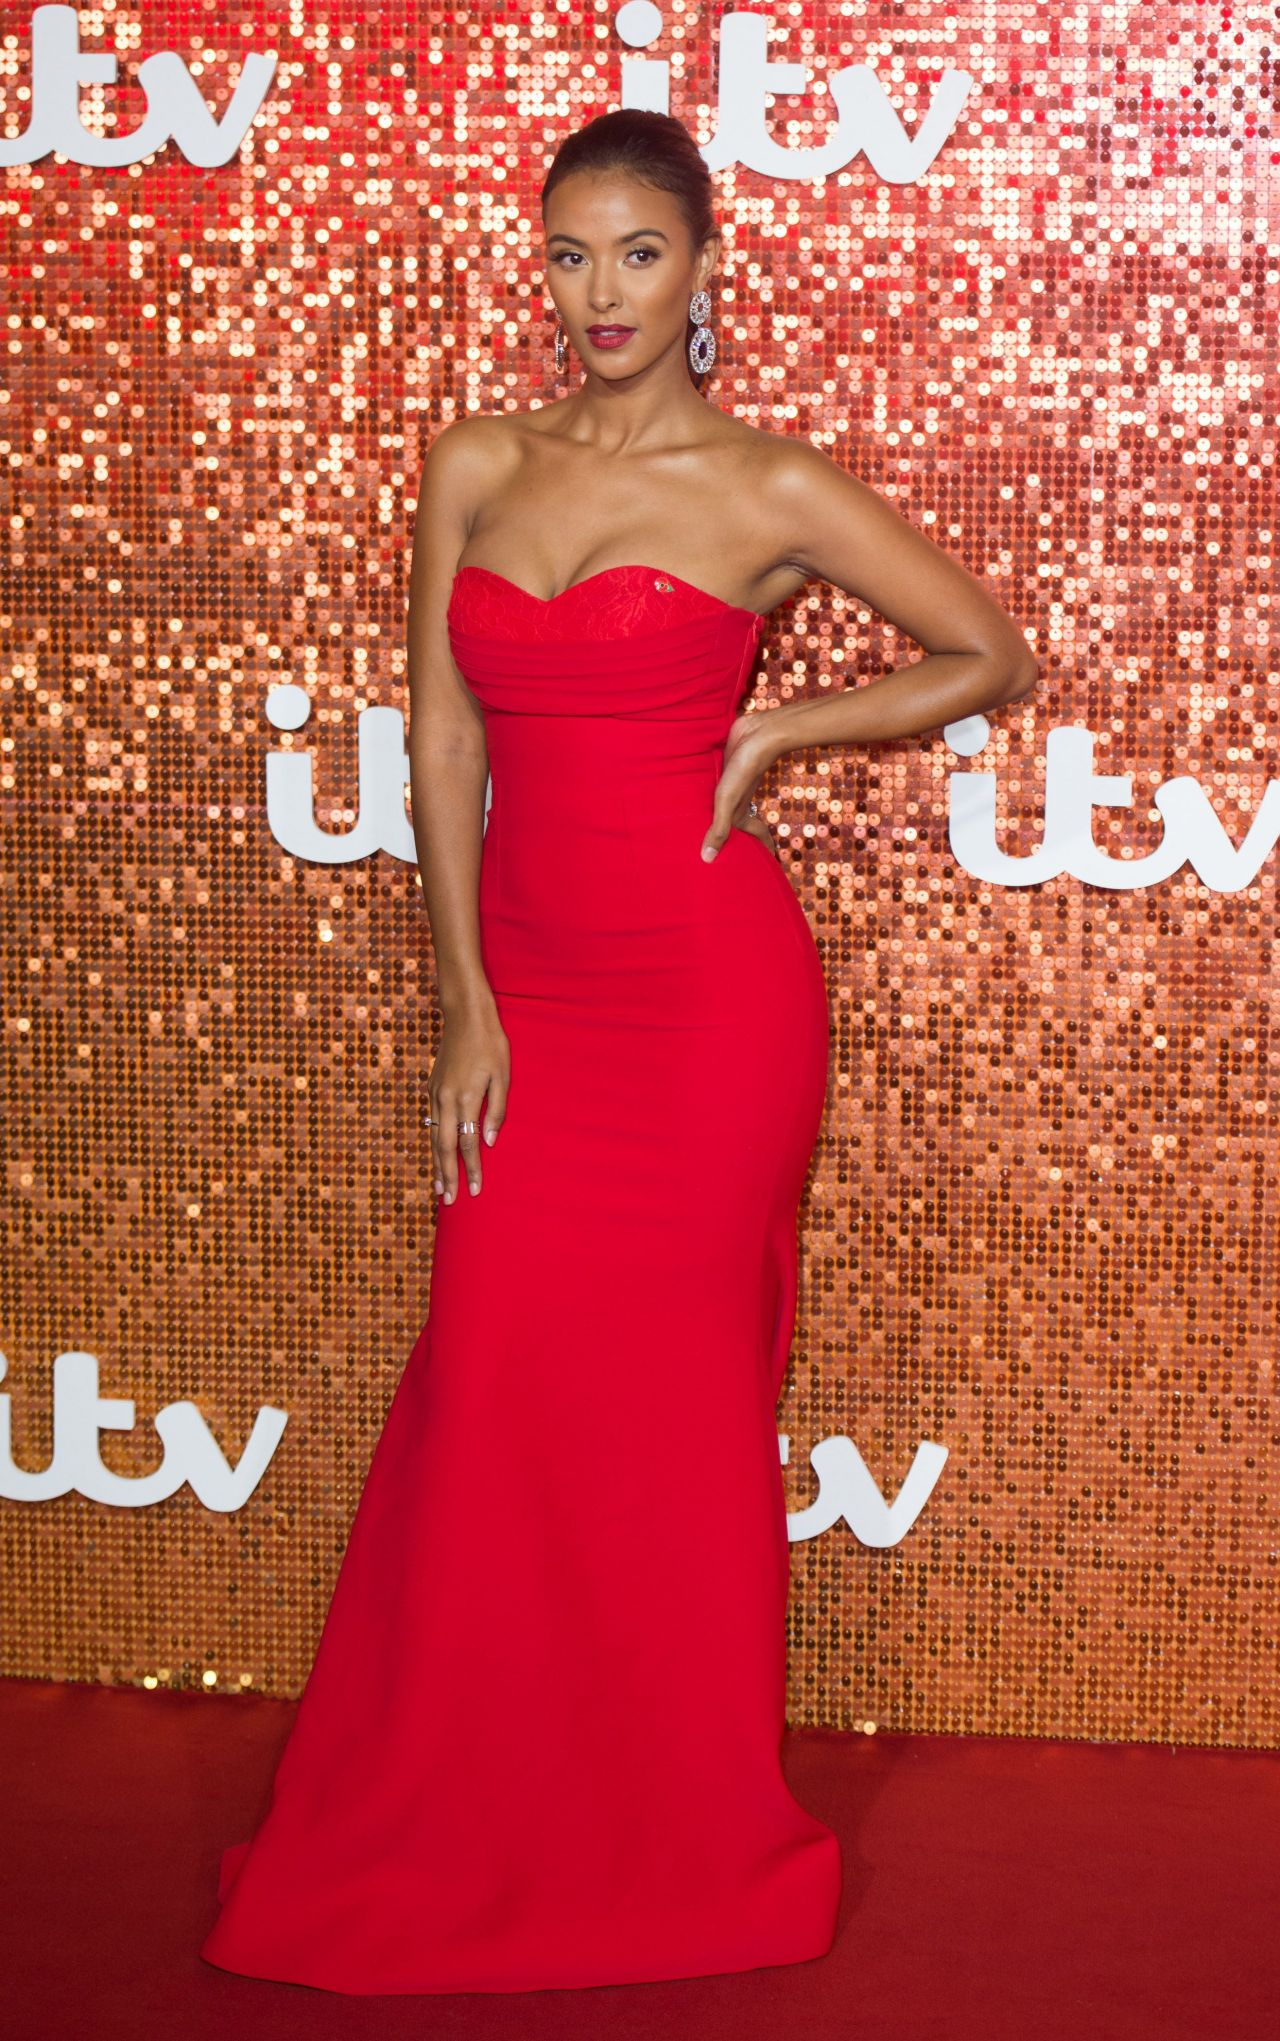 maya jama  u2013 itv gala ball in london 11  09  2017